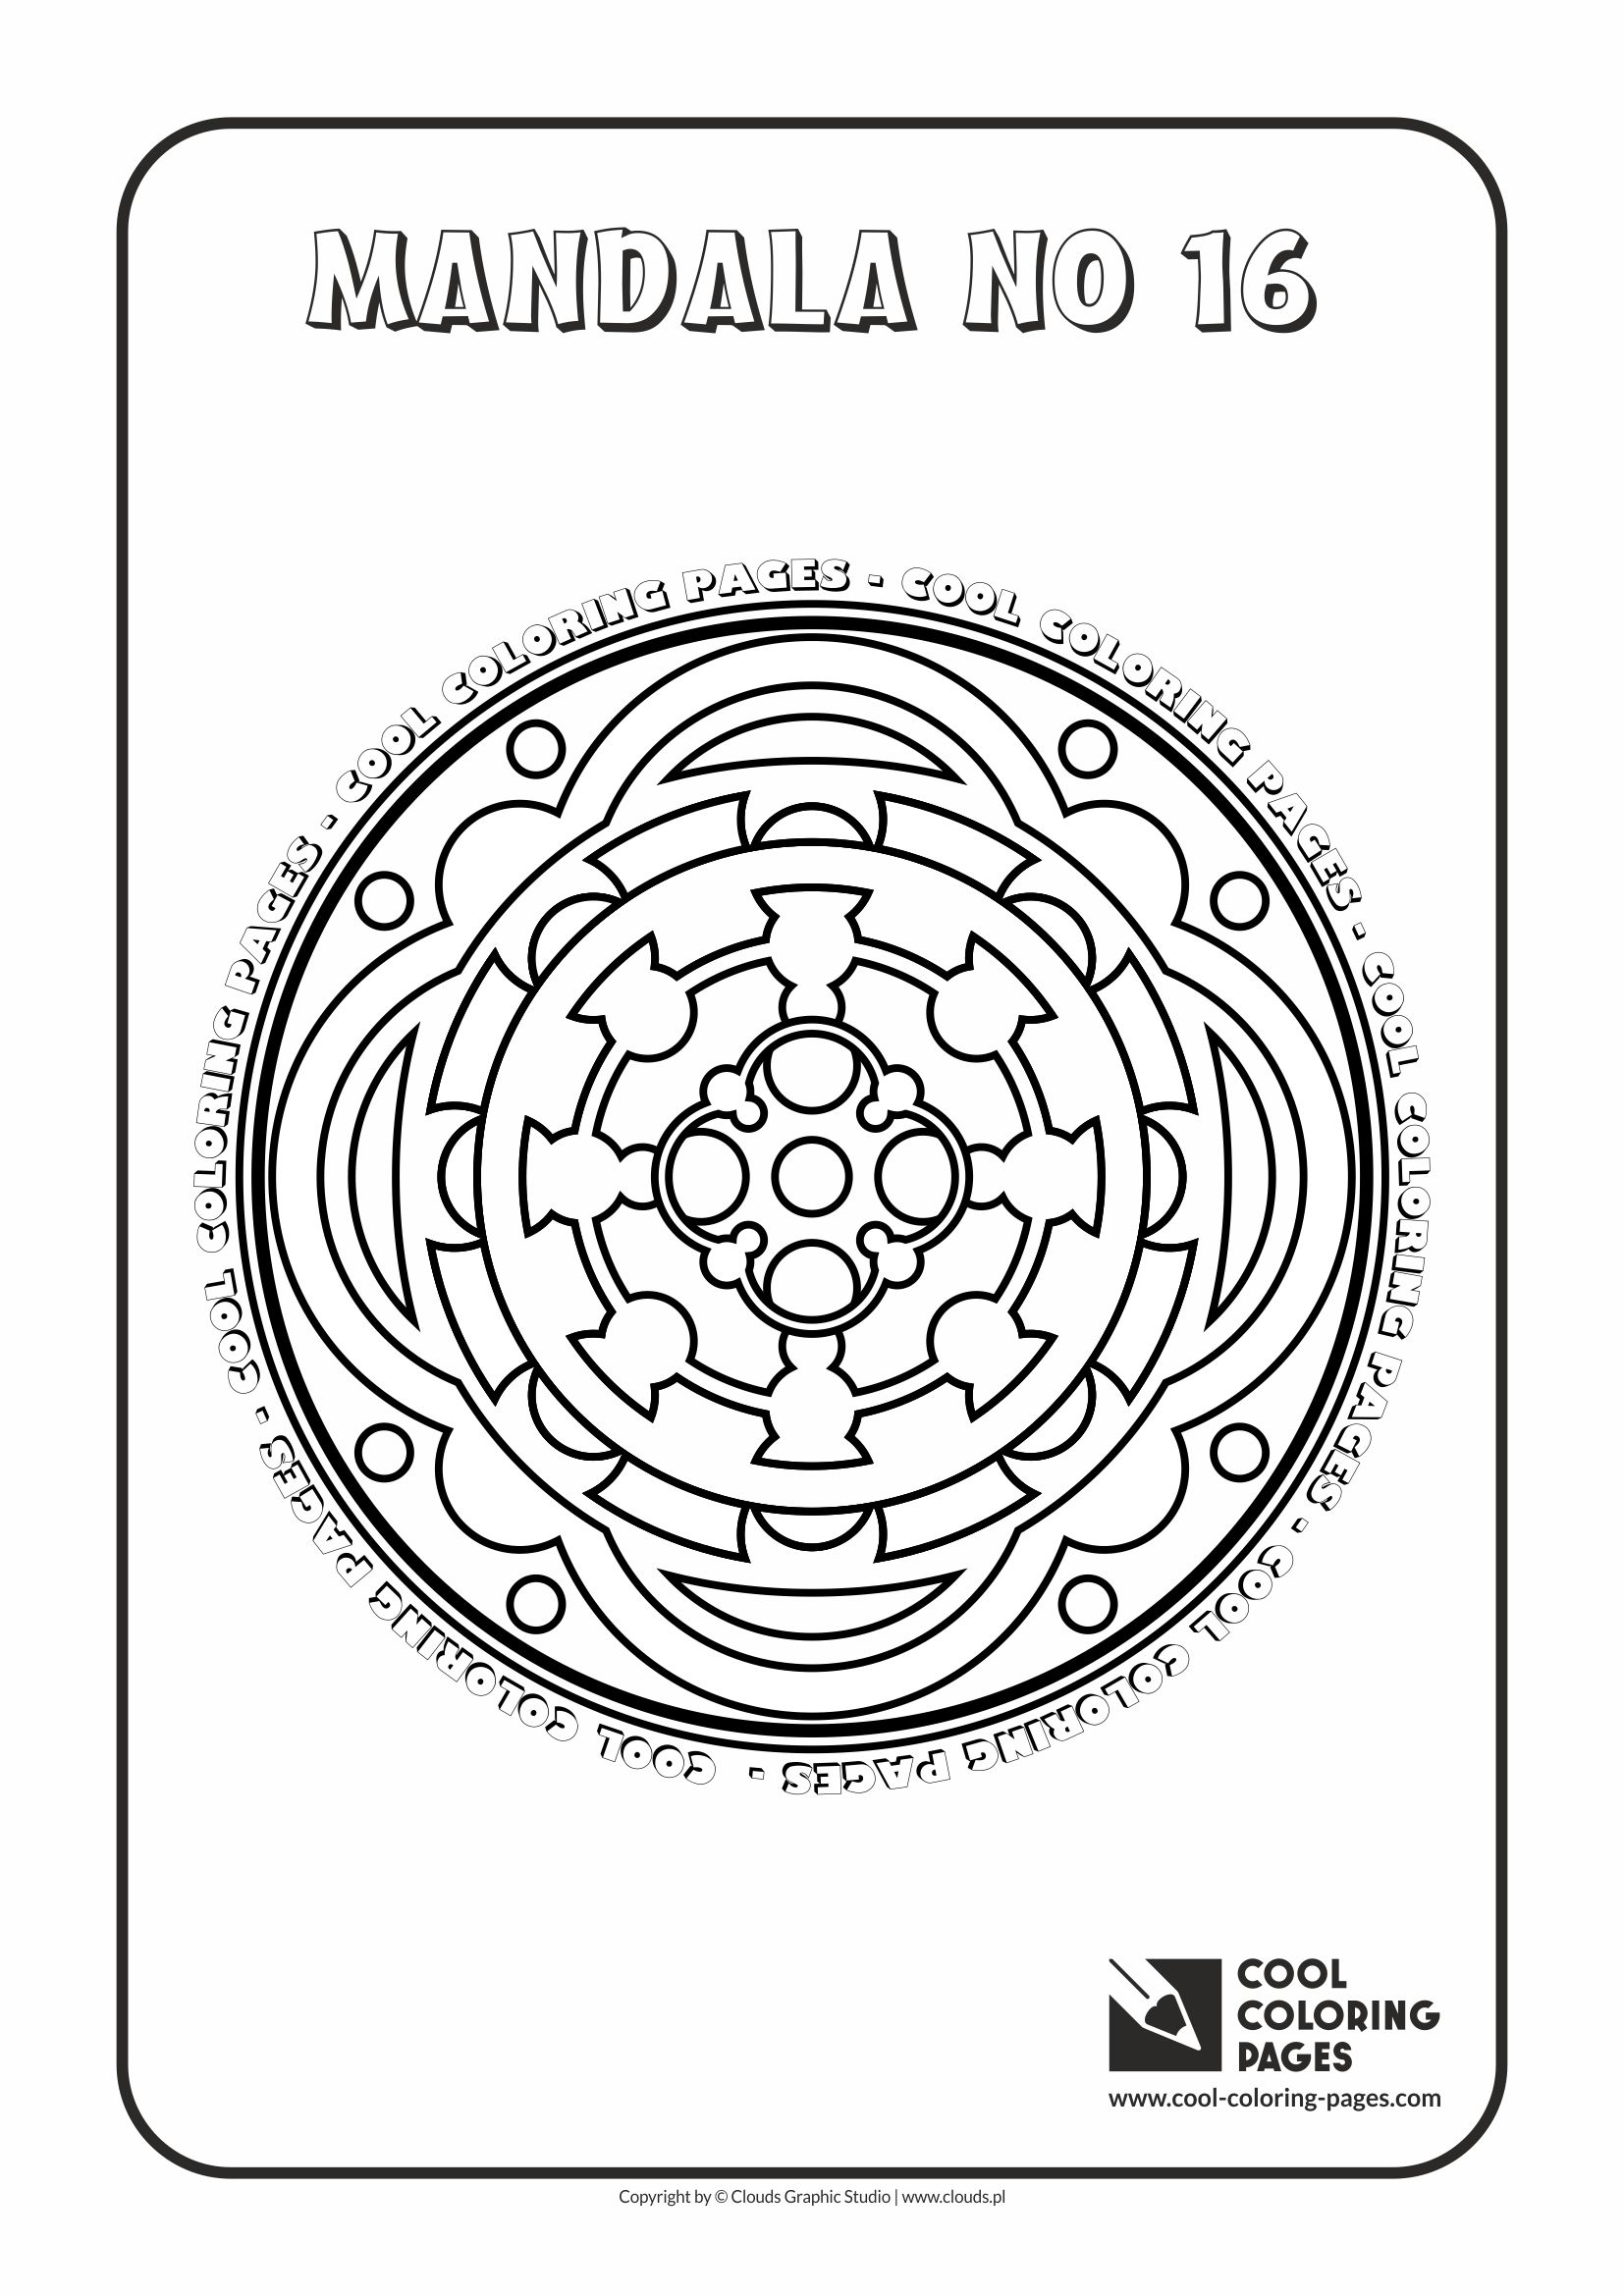 Cool Coloring Pages - Mandalas / Mandala no 16